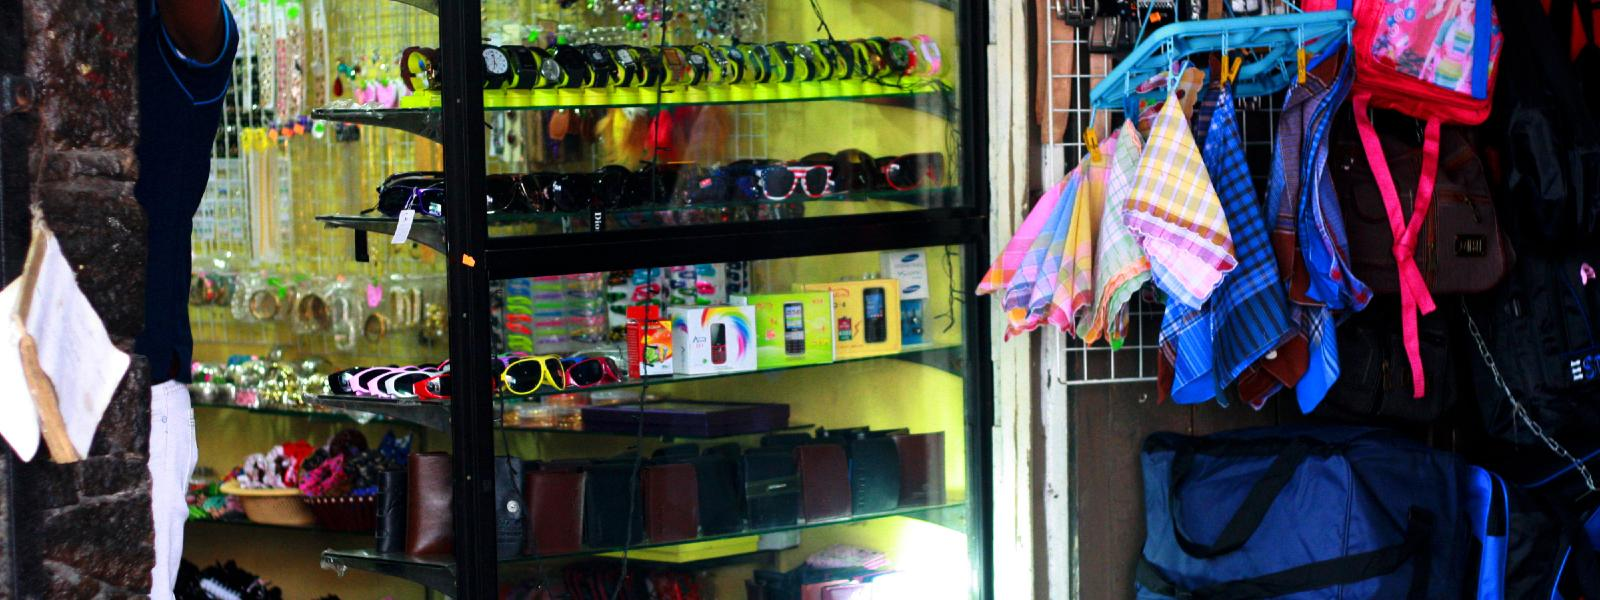 Be Extra Cautious during festival shopping – Advice from Police